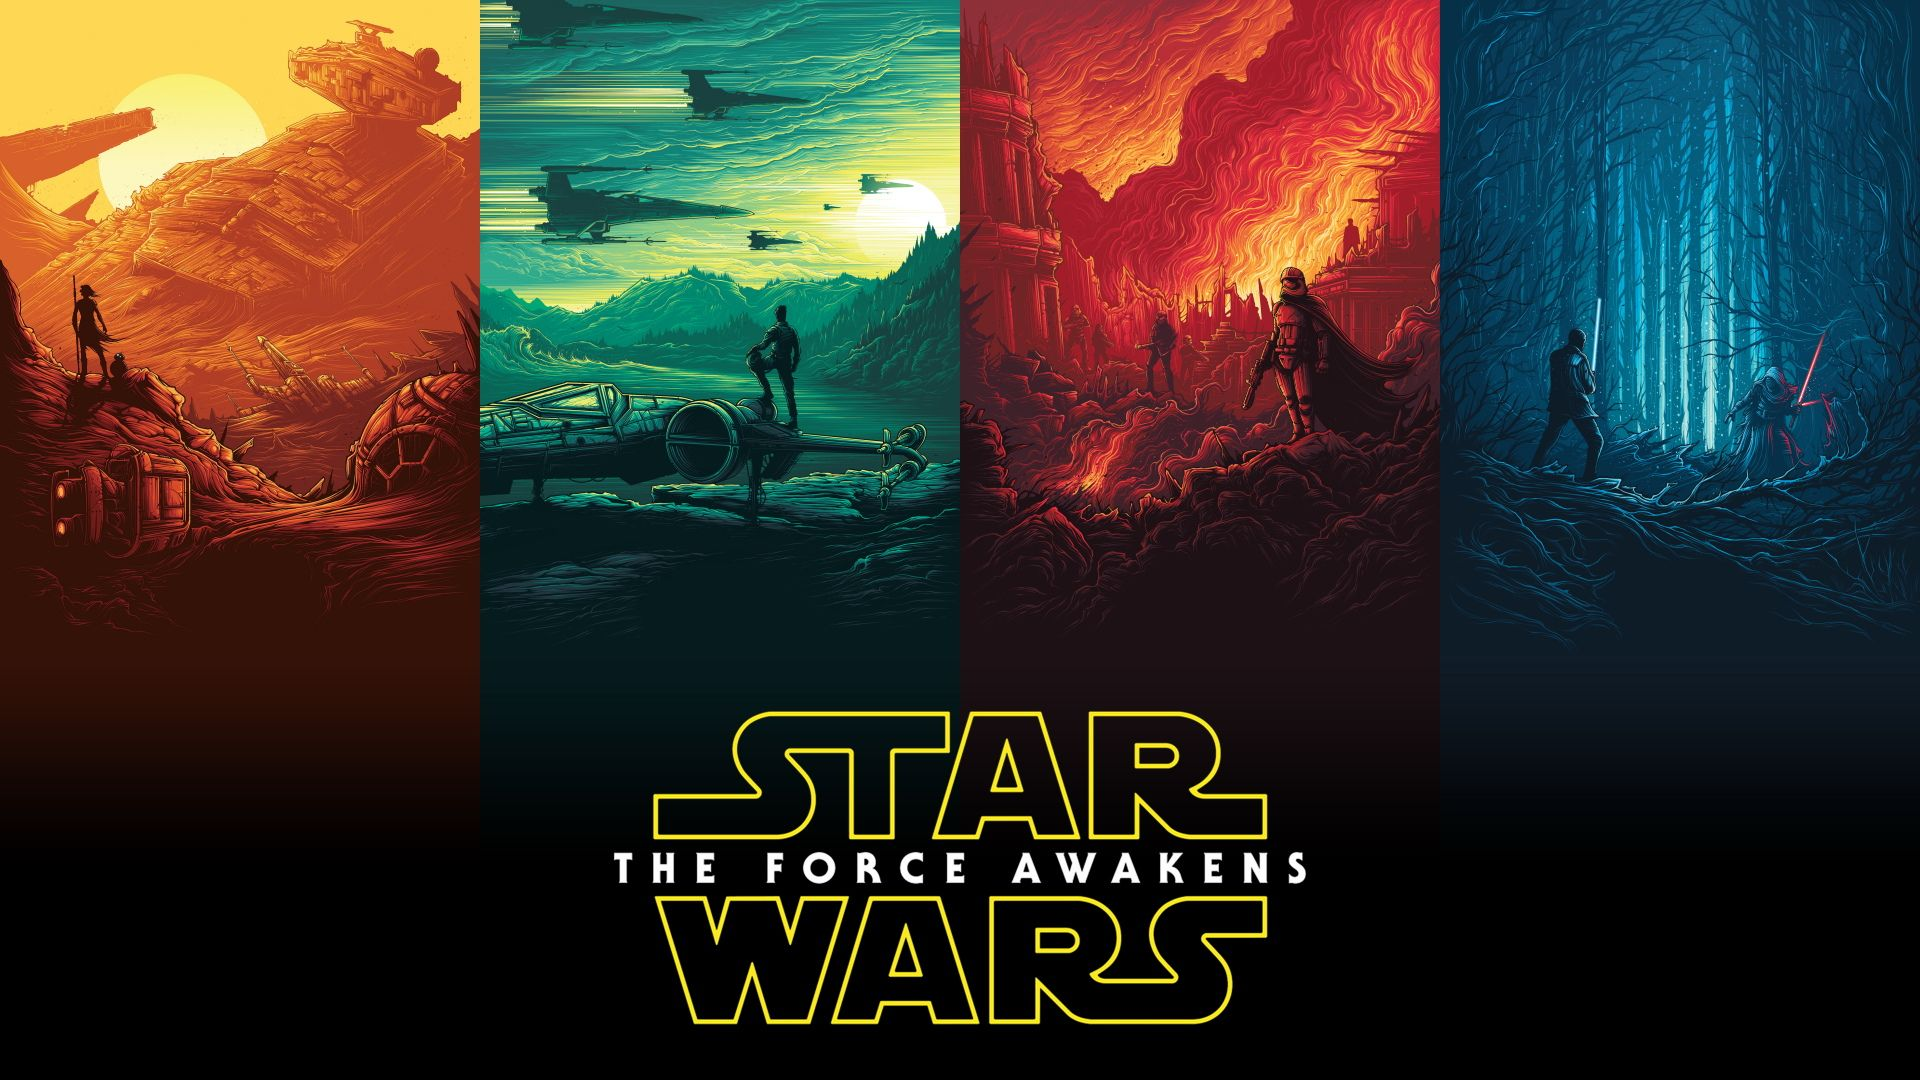 Star Wars Episode Vii The Force Awakens Wallpaper 089 Star Wars Wallpaper Star Wars Background Star Wars Poster